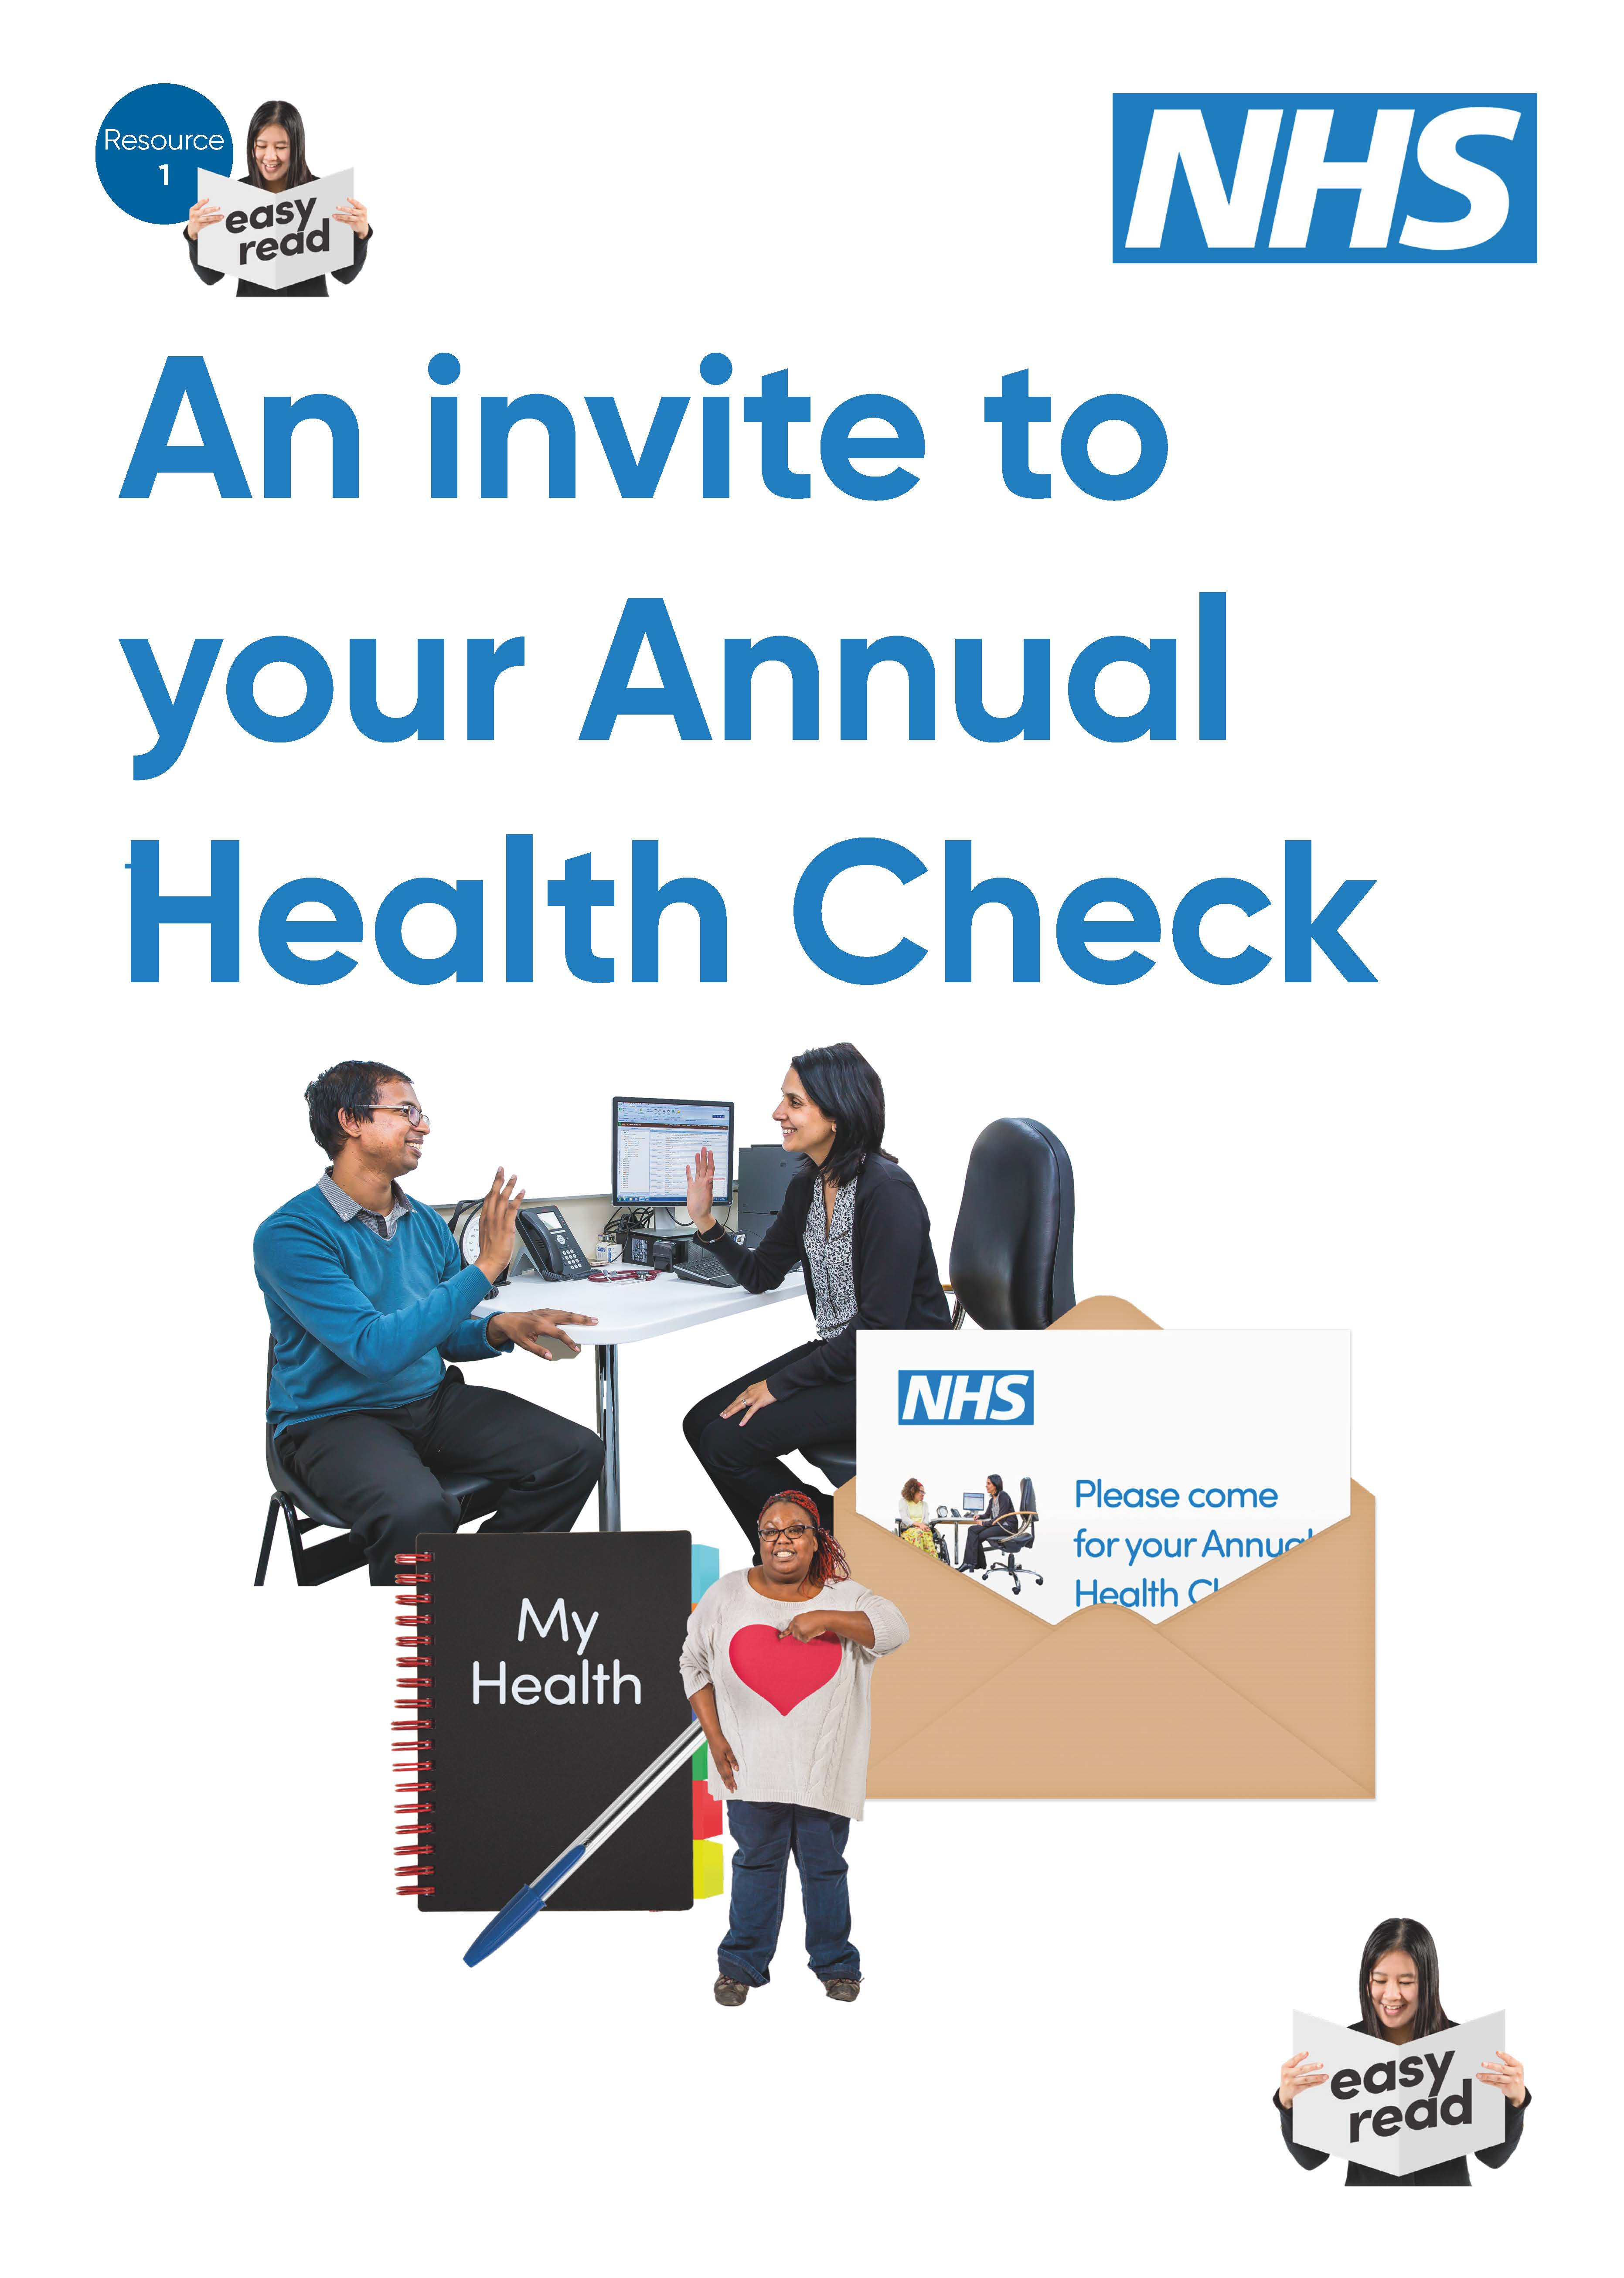 01 An invite to your Annual Health Check (Essex)